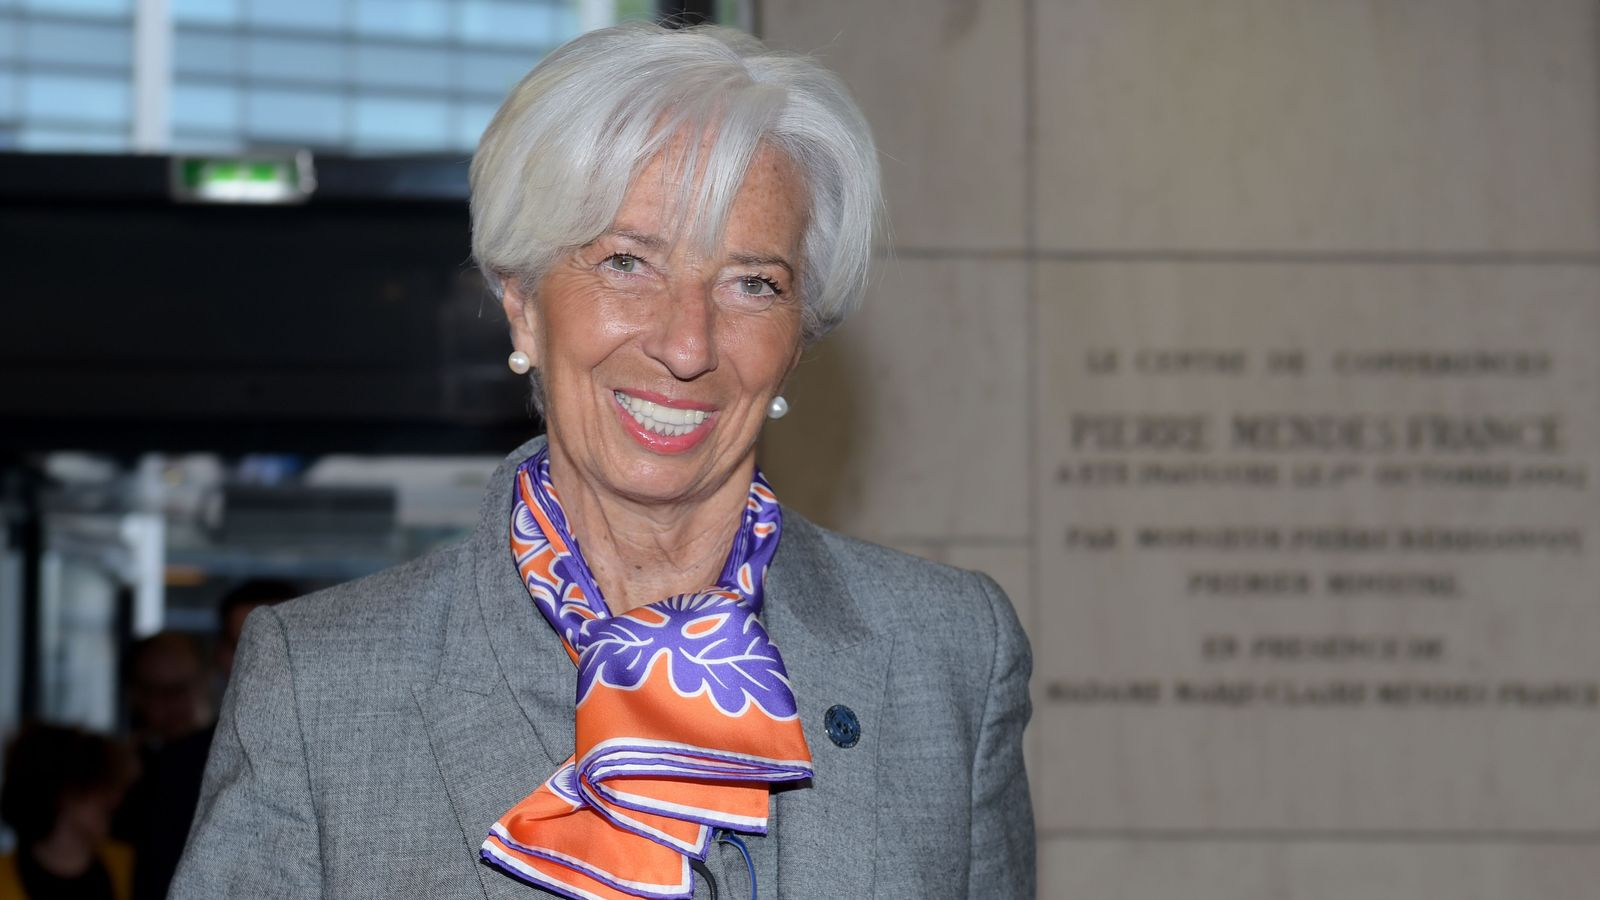 IMF boss Lagarde resigns after 'more clarity' on possible ECB role